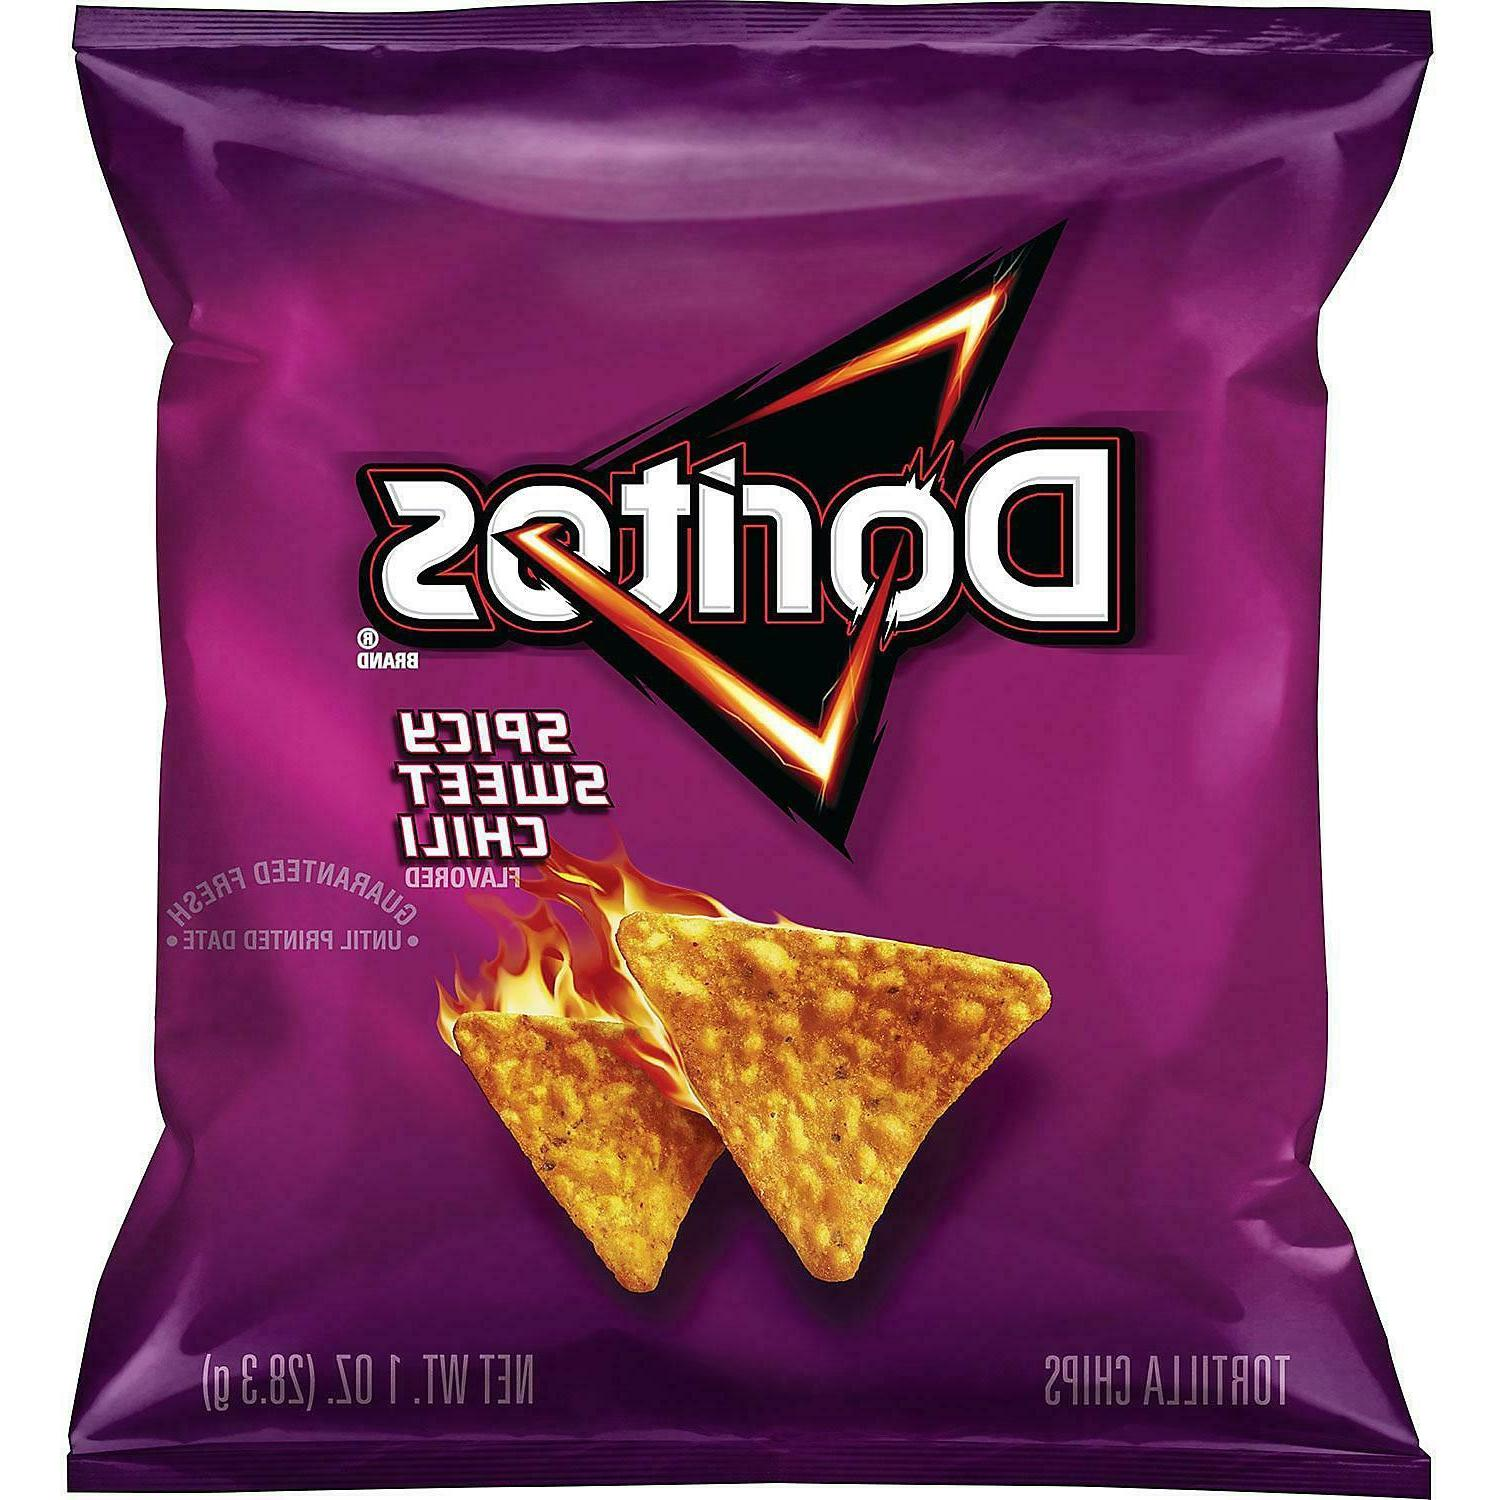 Frito-Lay Pack *BEST THE US*